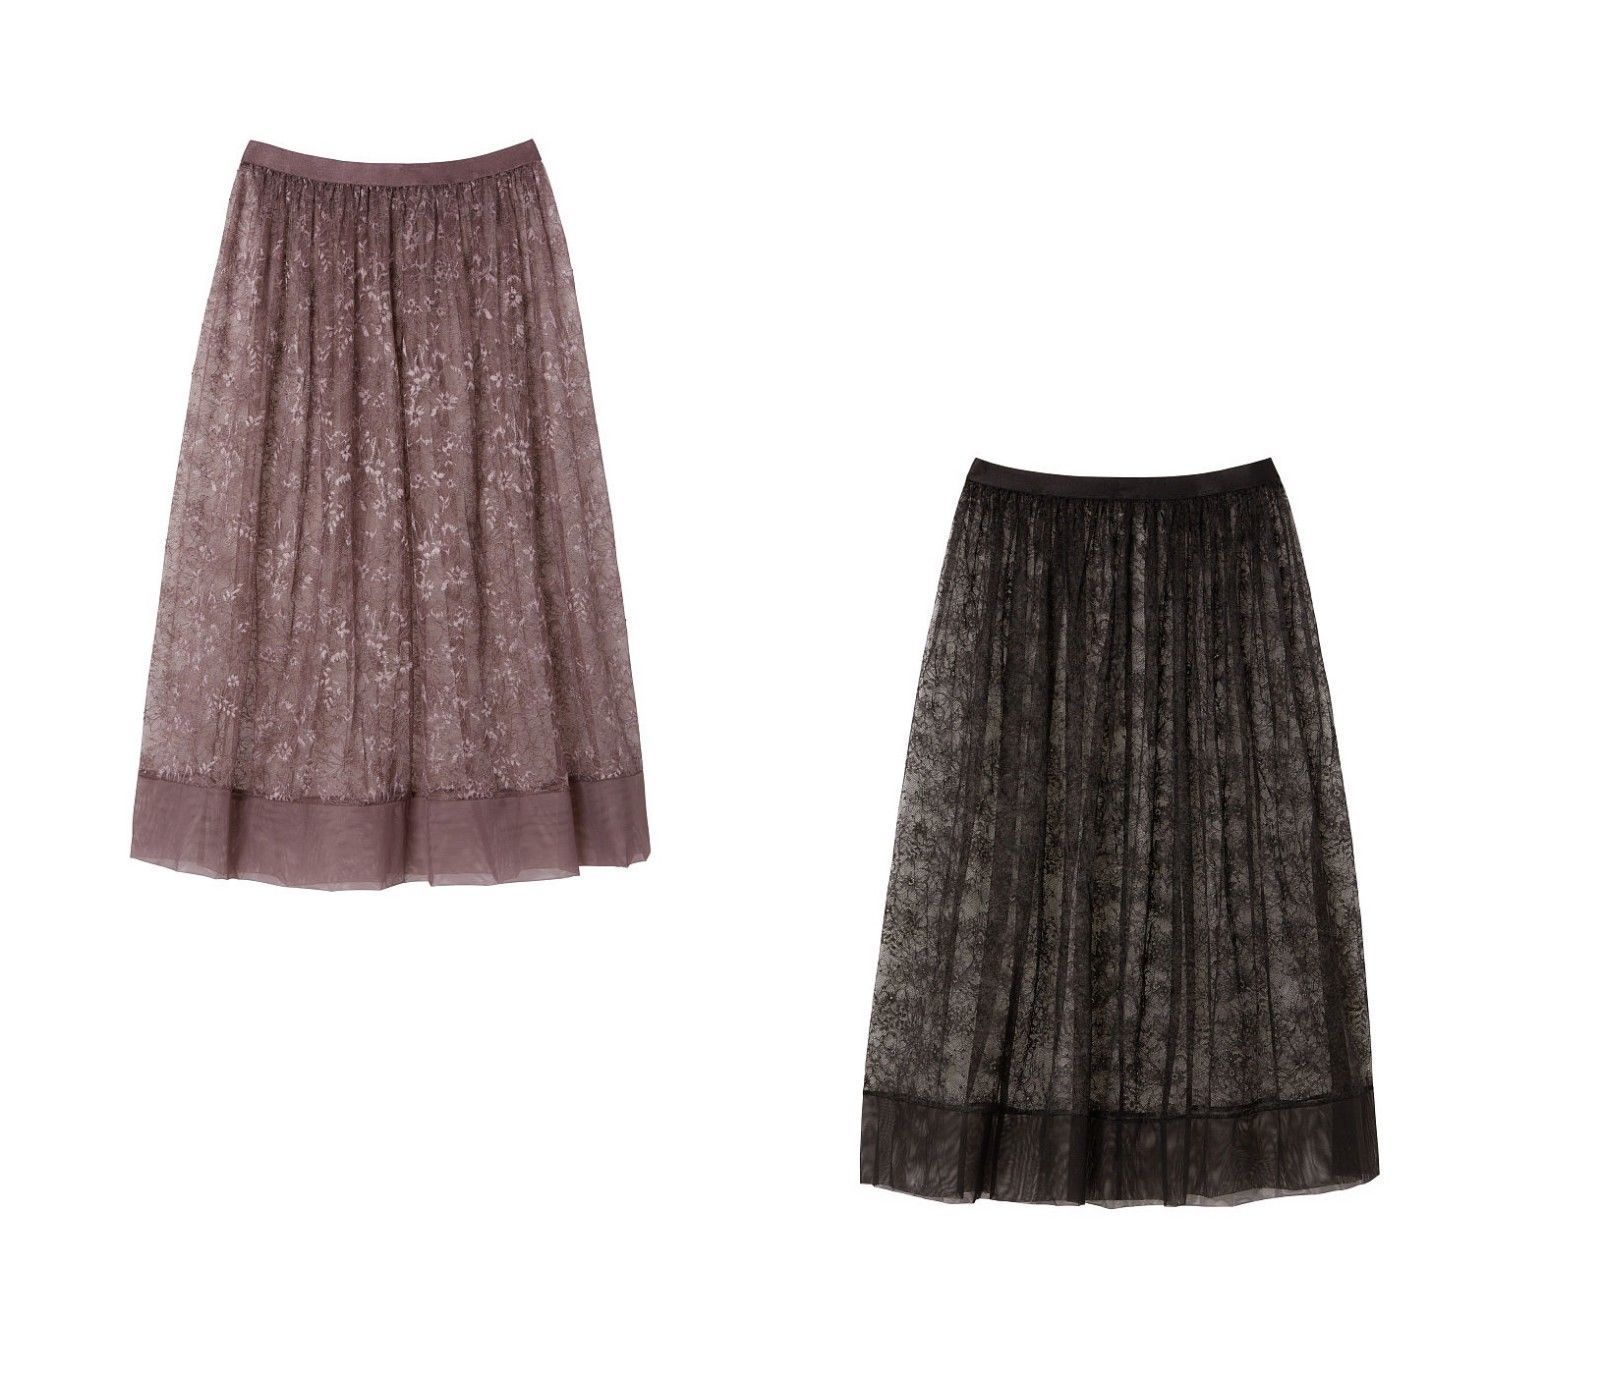 a9c69d6b28 NWT VS Victoria's Secret Floral Lace Midi Skirt Cocoa Blush and Black -  $24.39 - $24.99